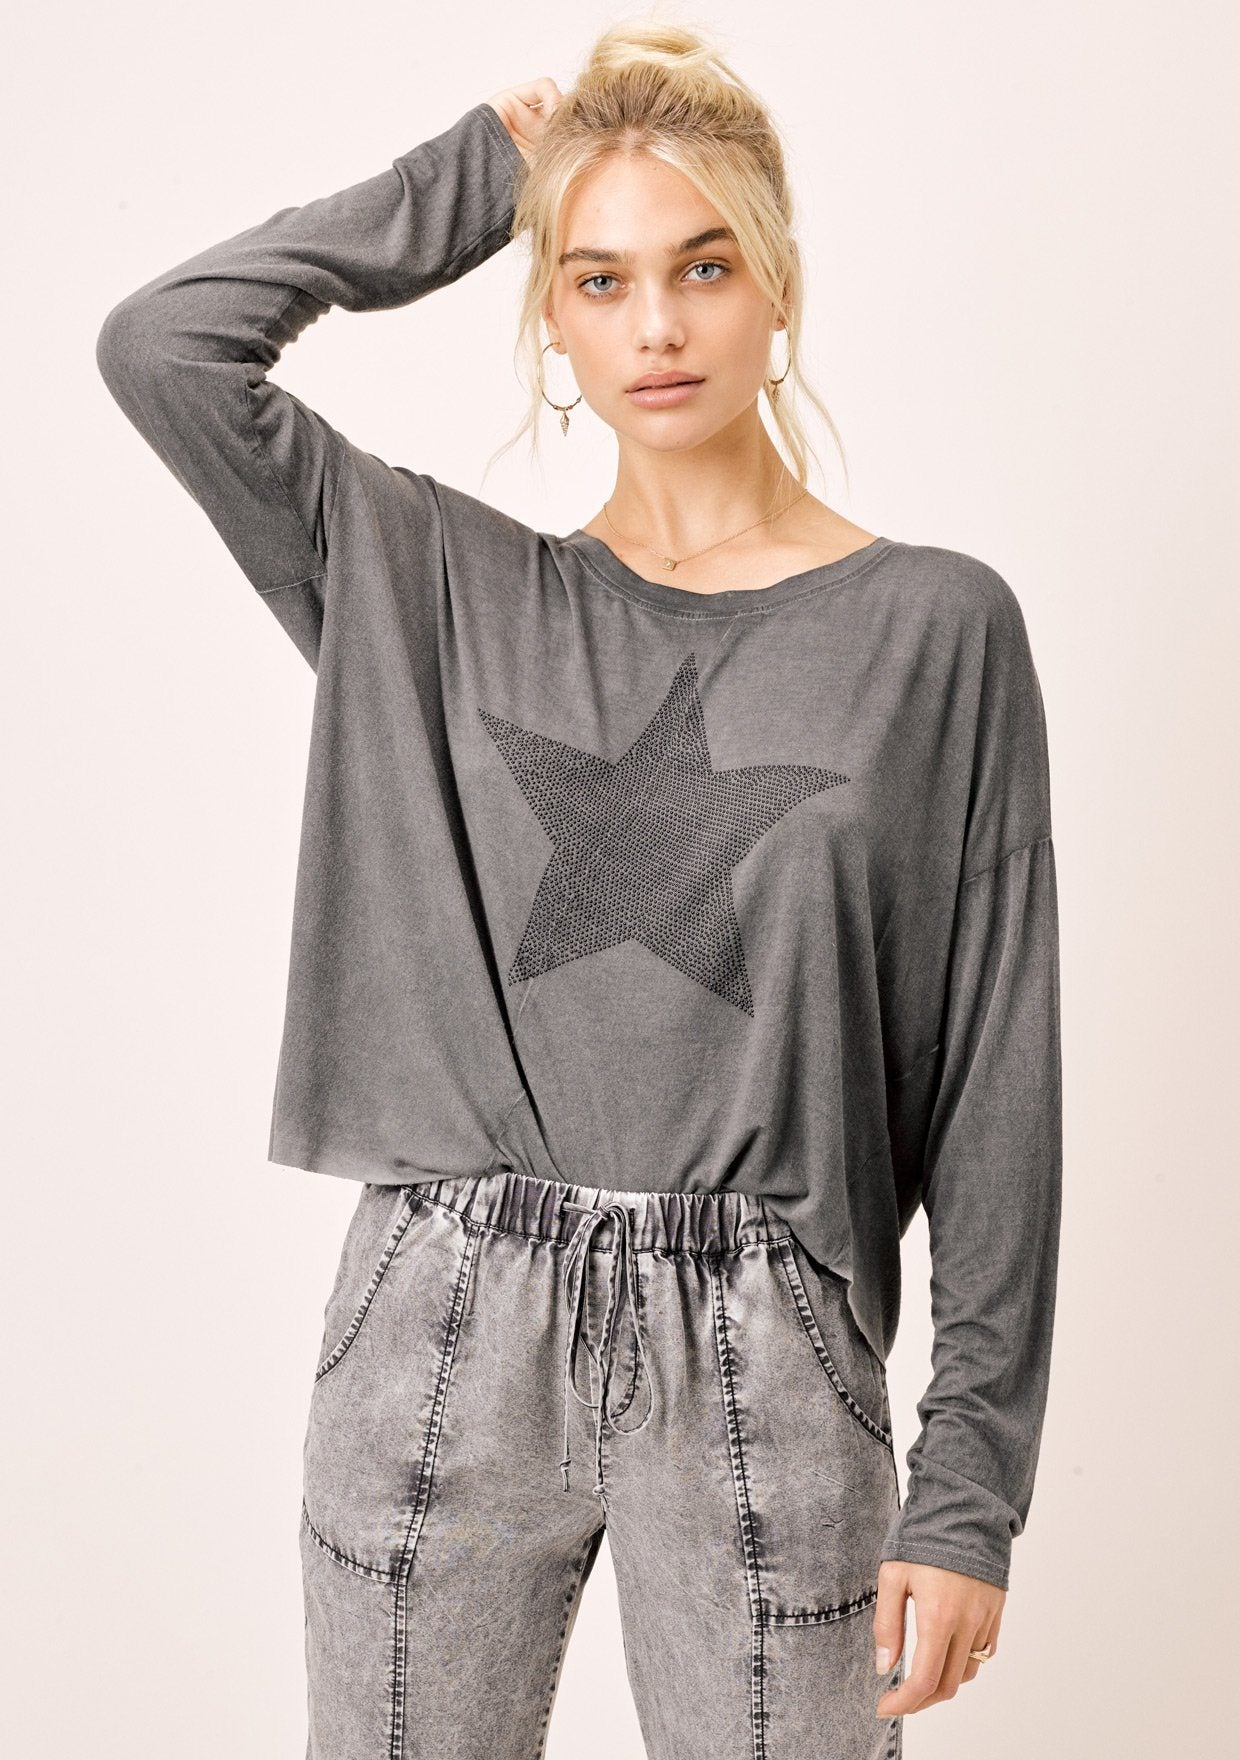 [Color: Charcoal] Lovestitch vintage wash, charcoal, long sleeve top with big star detail.